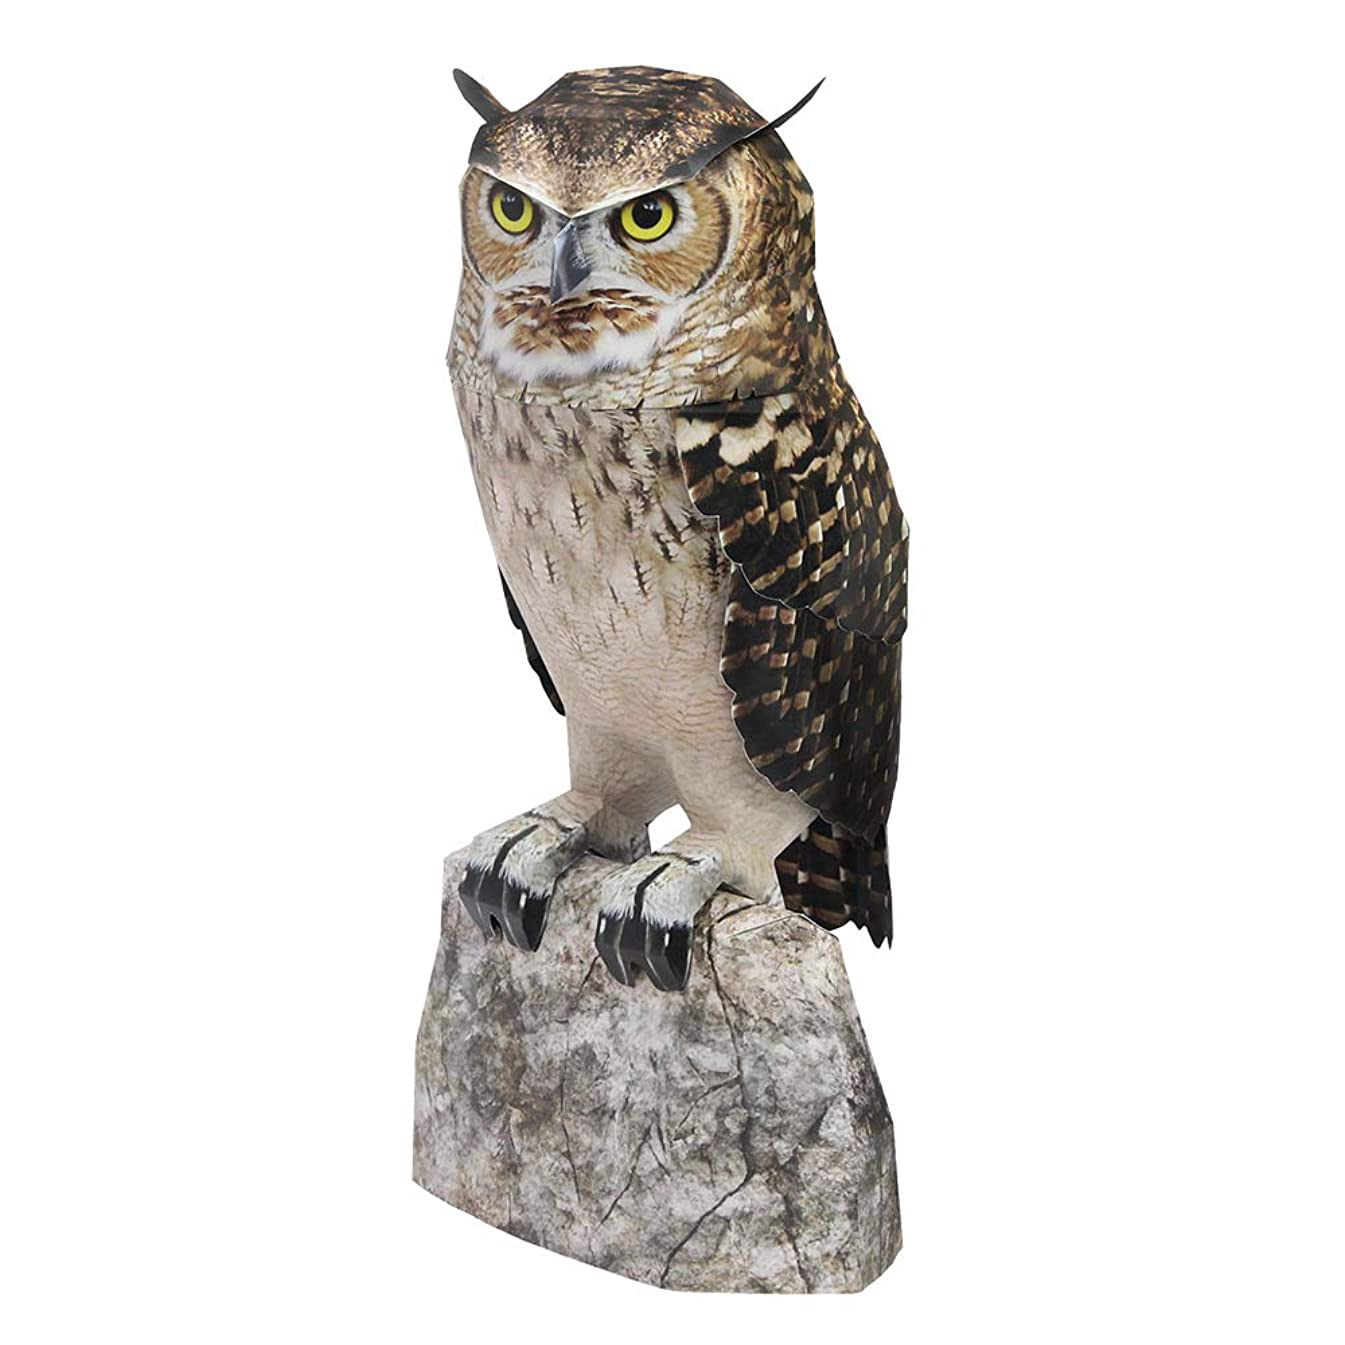 HAPPYPAPER Wild Animal Eagle owl Low Poly DIY Papercraft Puzzle Kit for Adults & Teens - NO Scissors Needed